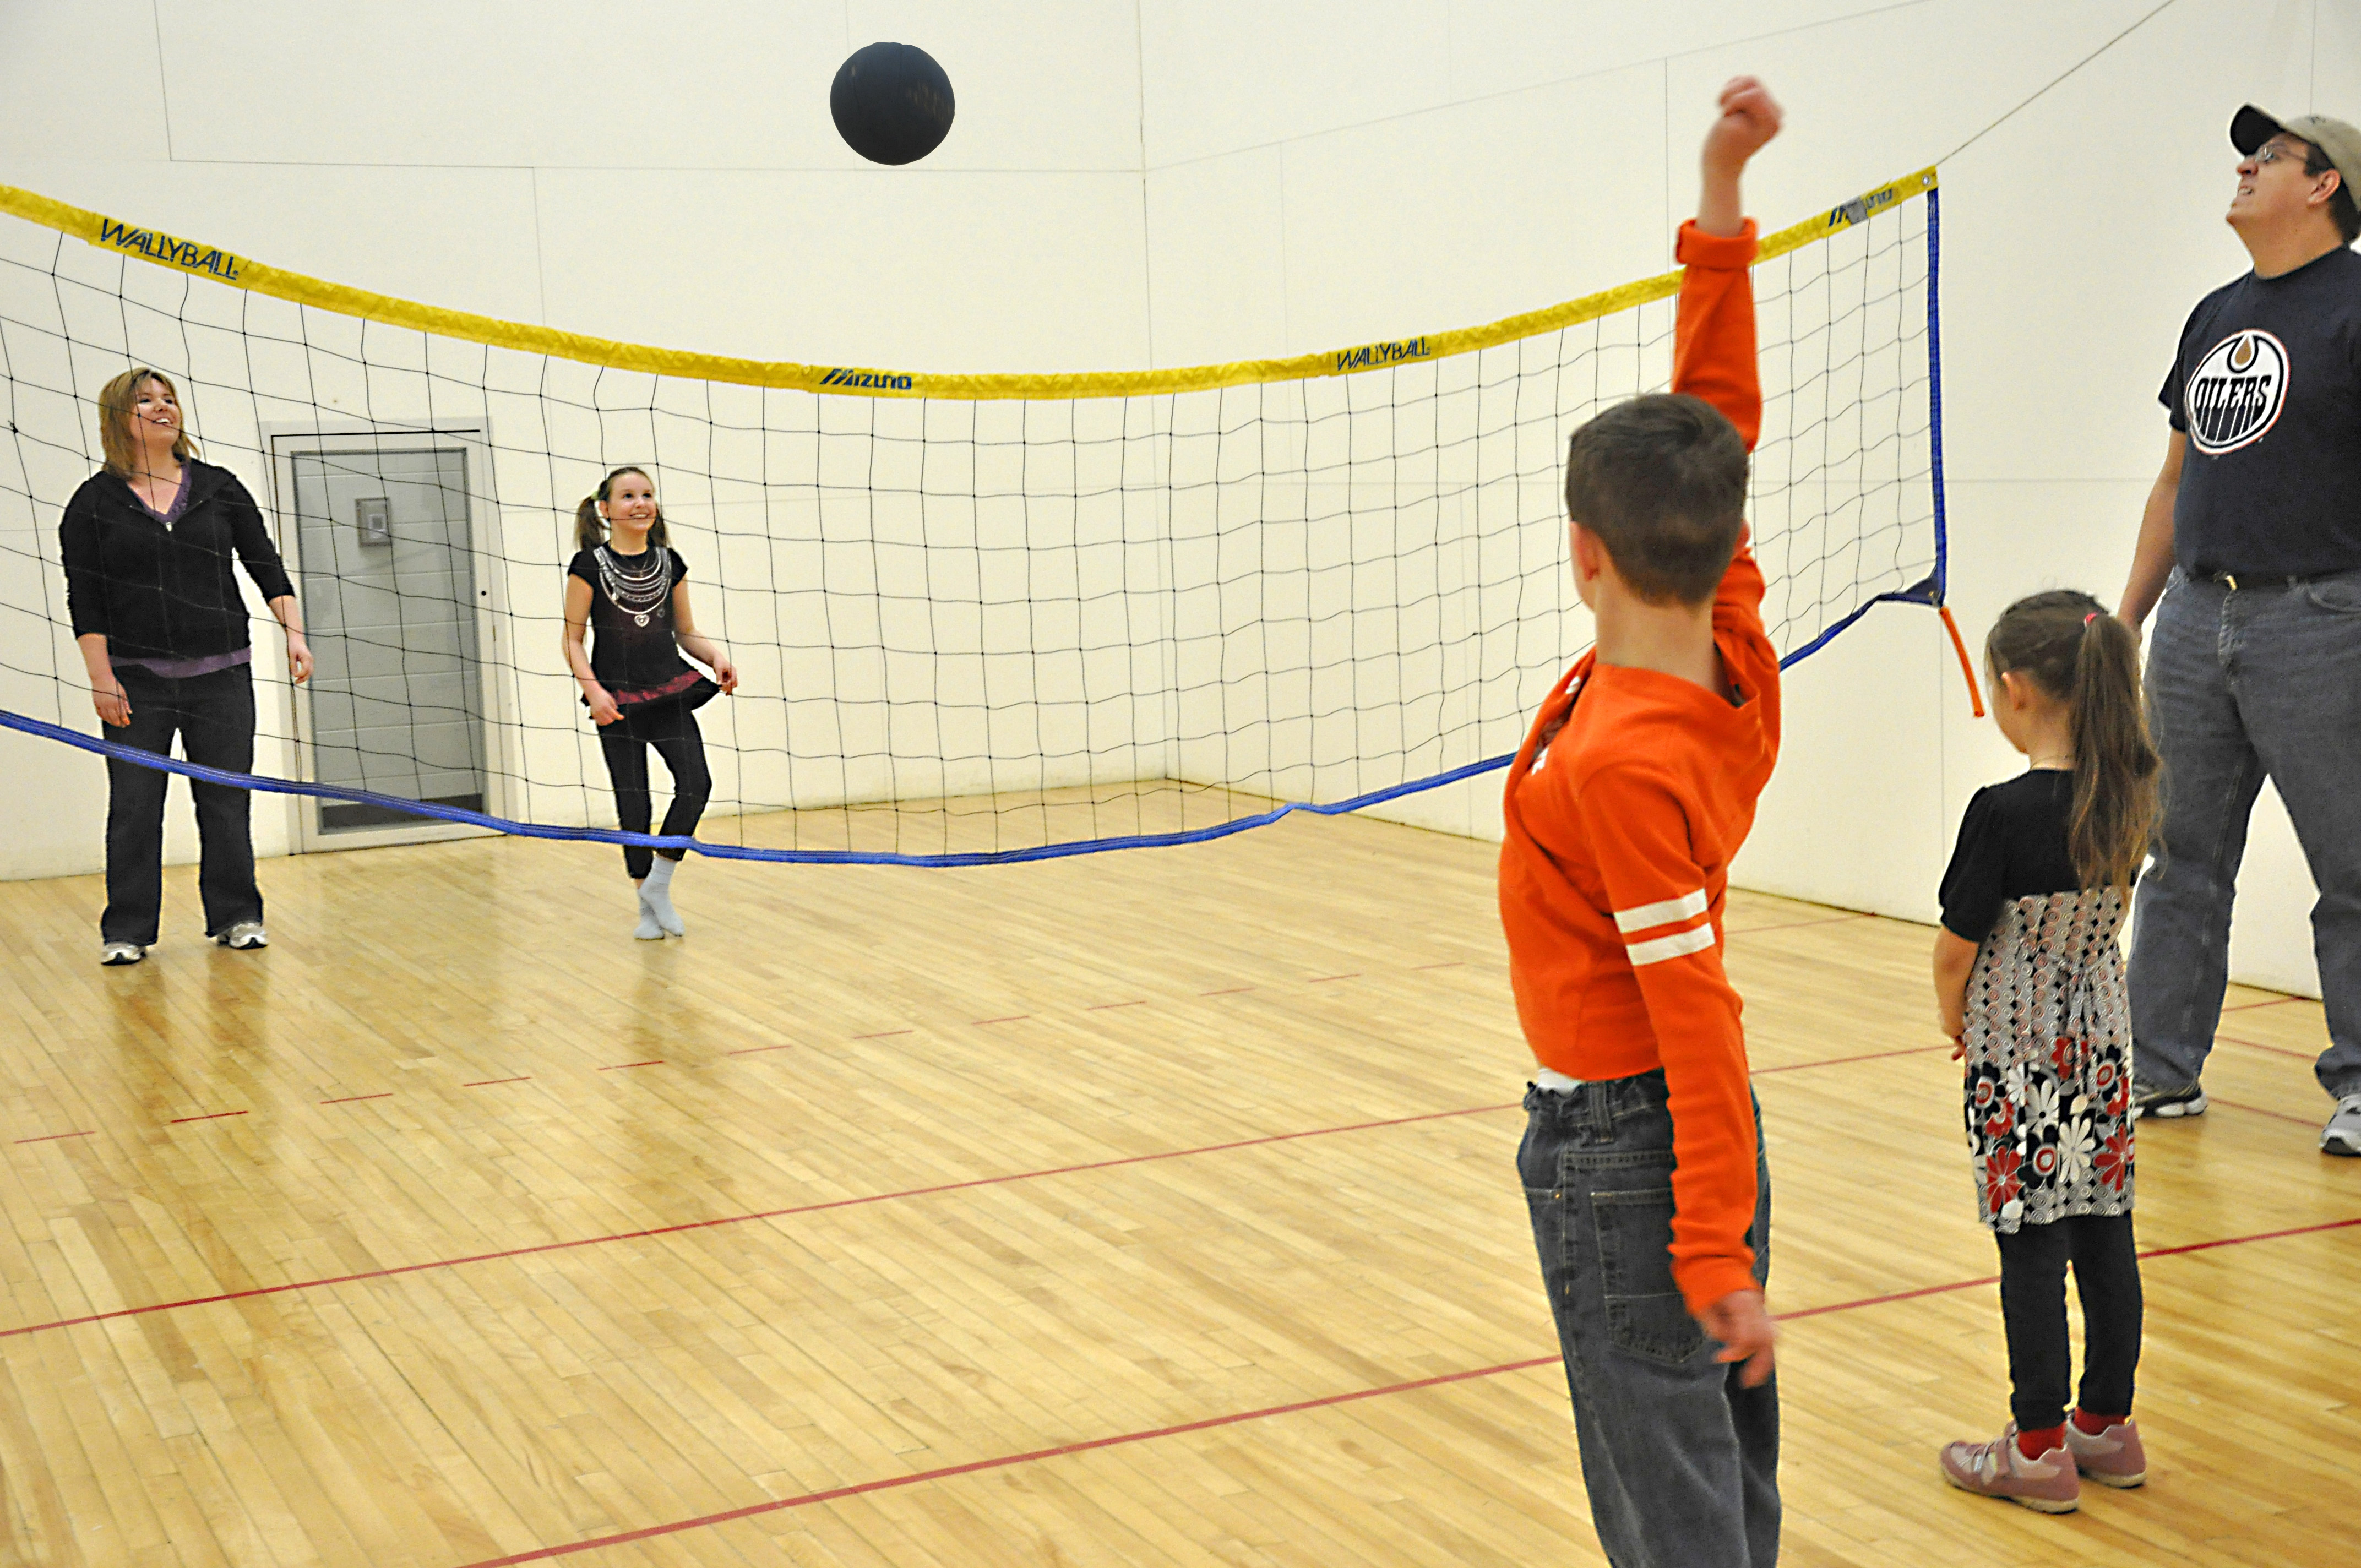 Dr Duncan Murray Recreation Centre Courts Wallyball